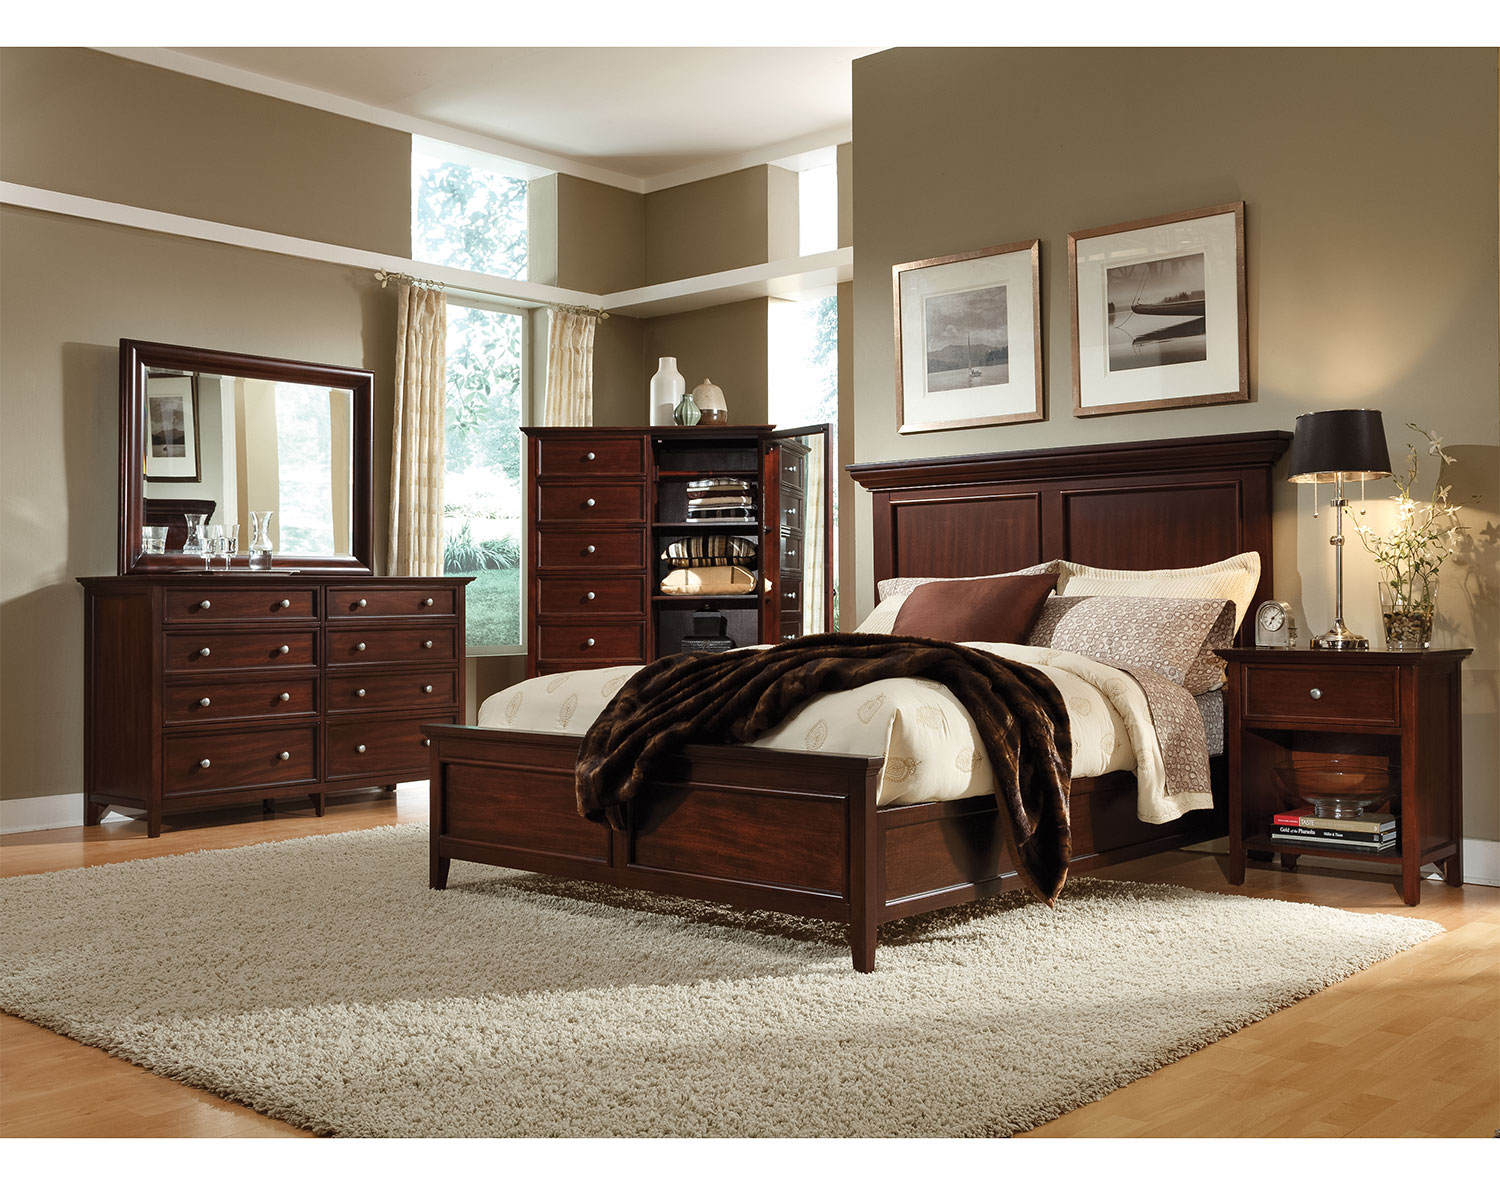 bedroom levin furniture 12080 | 469456 fit inside 7c320 320 composite to center center 7c320 320 background color white